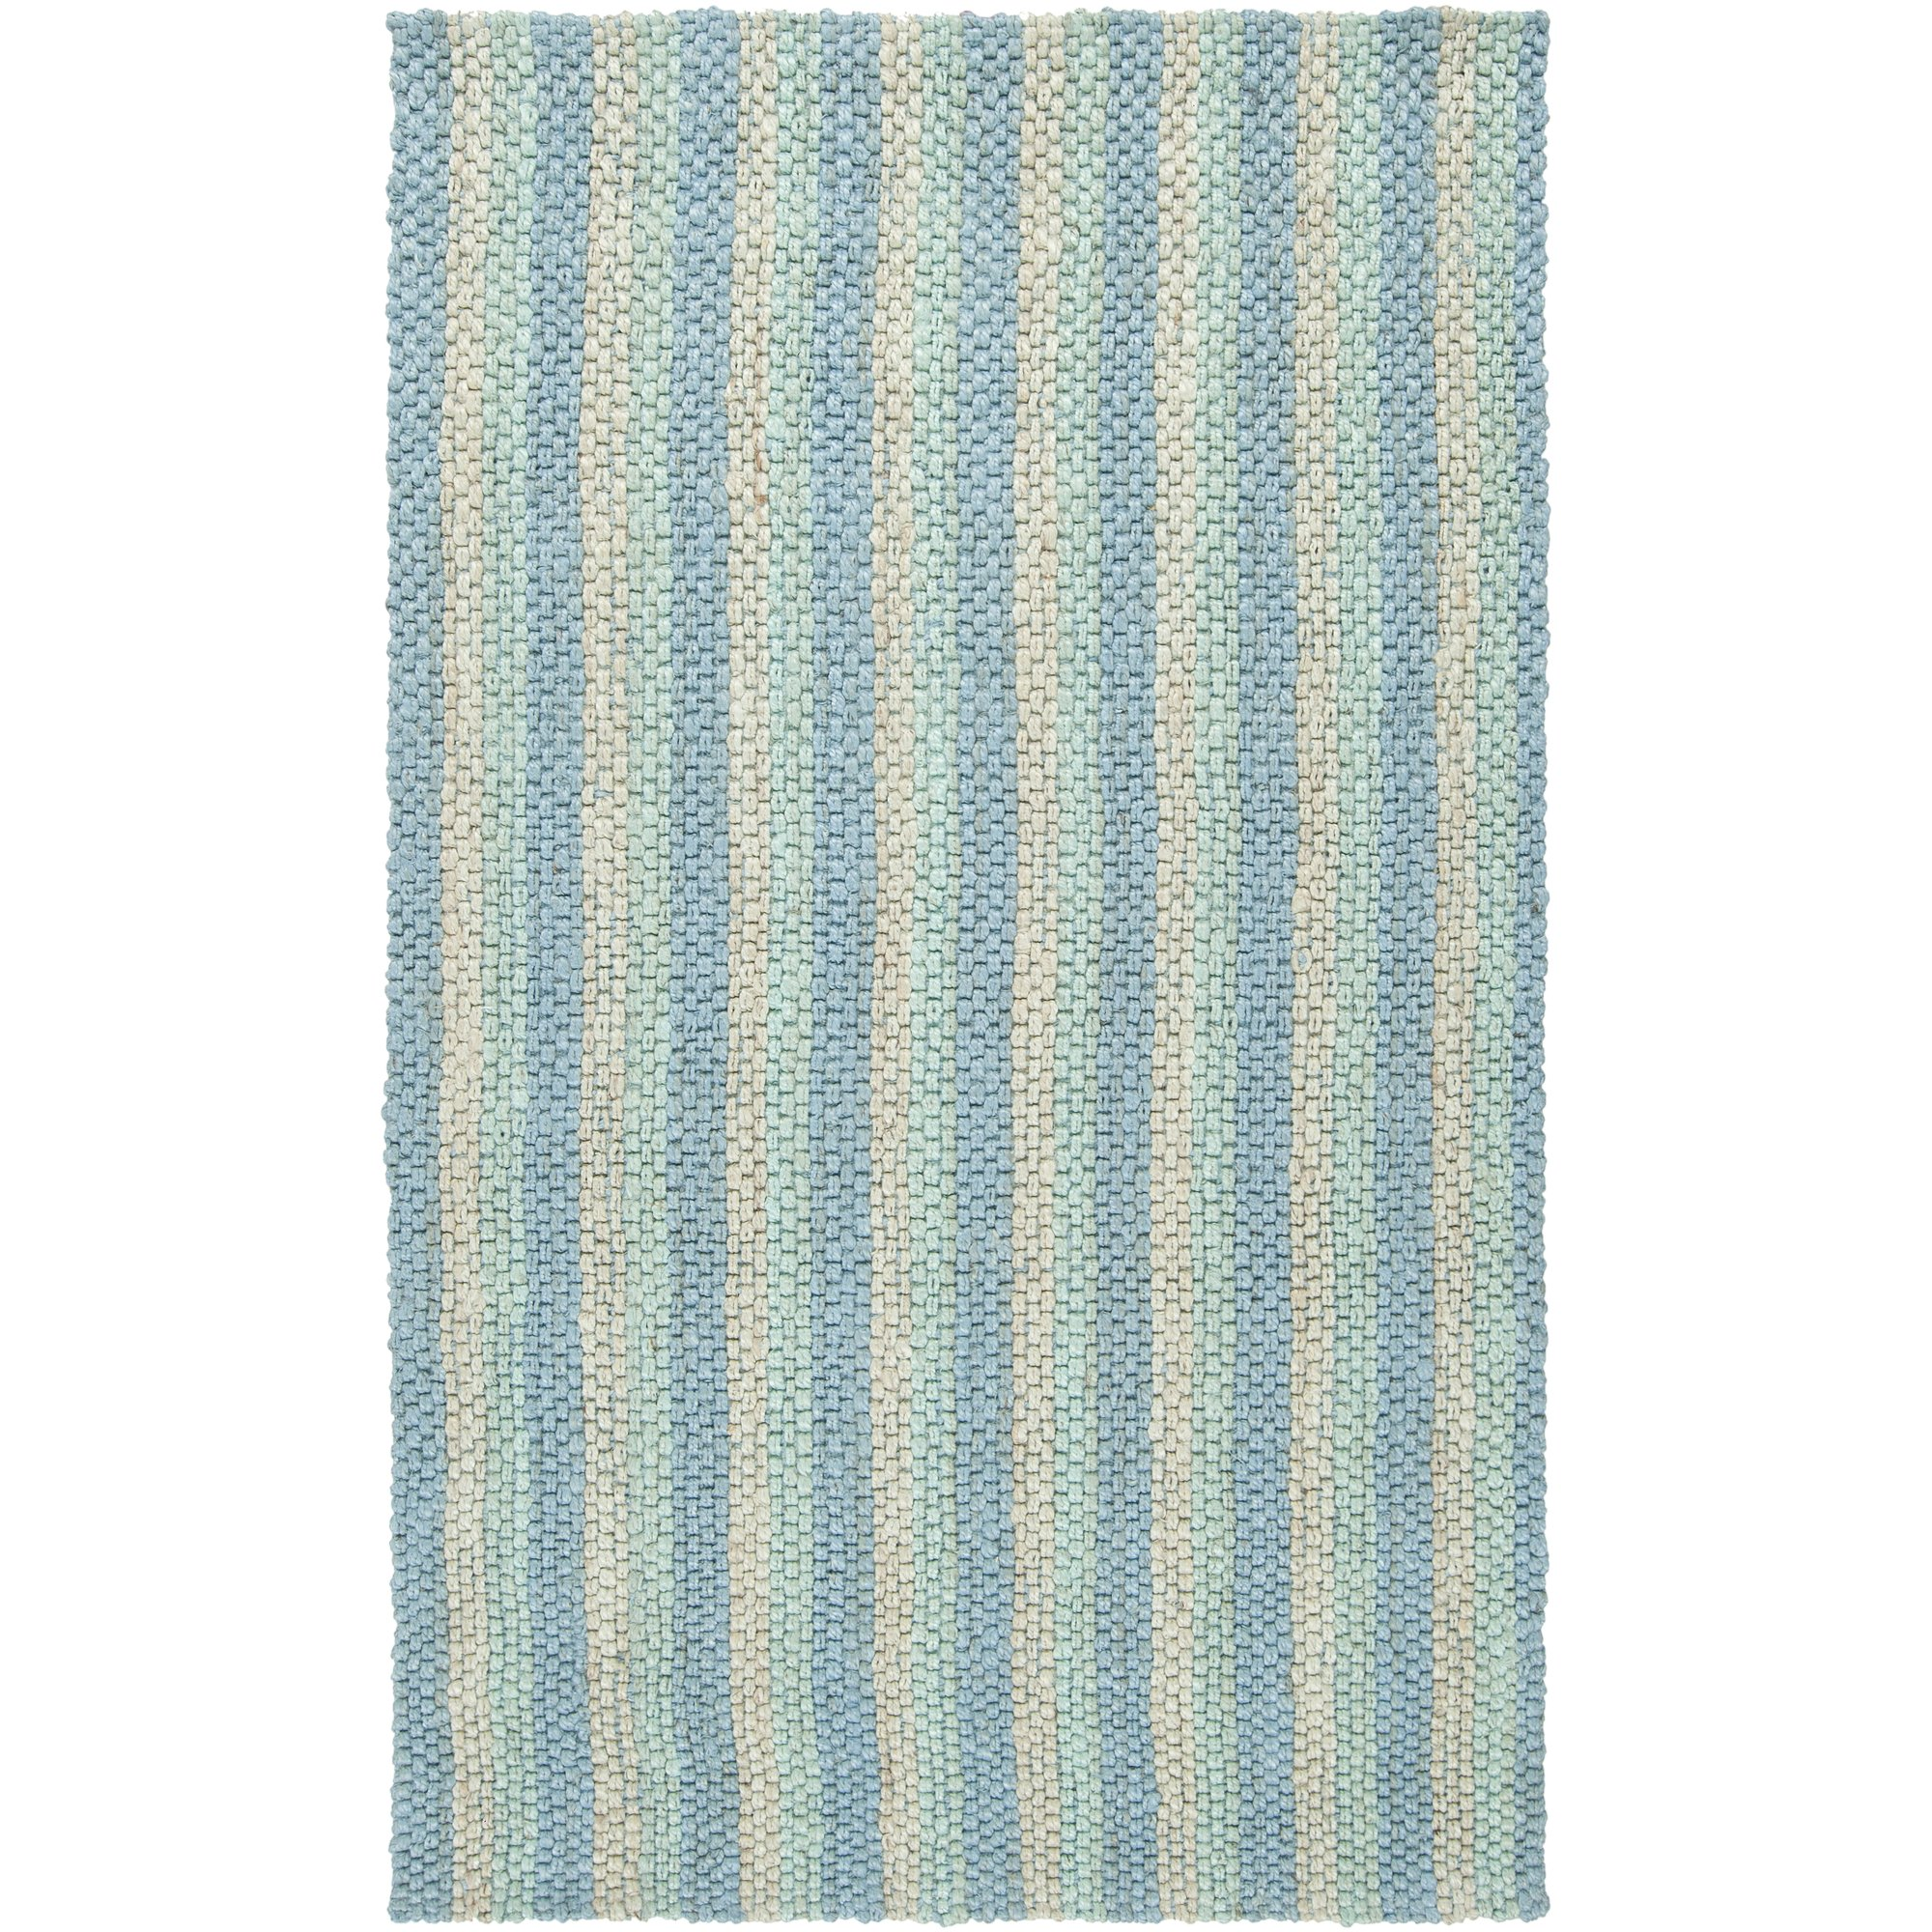 Country Living by Surya Country Jutes CTJ-2023 Natural Fiber Hand Woven 100% Jute Slate Blue 5' x 8' Area Rug